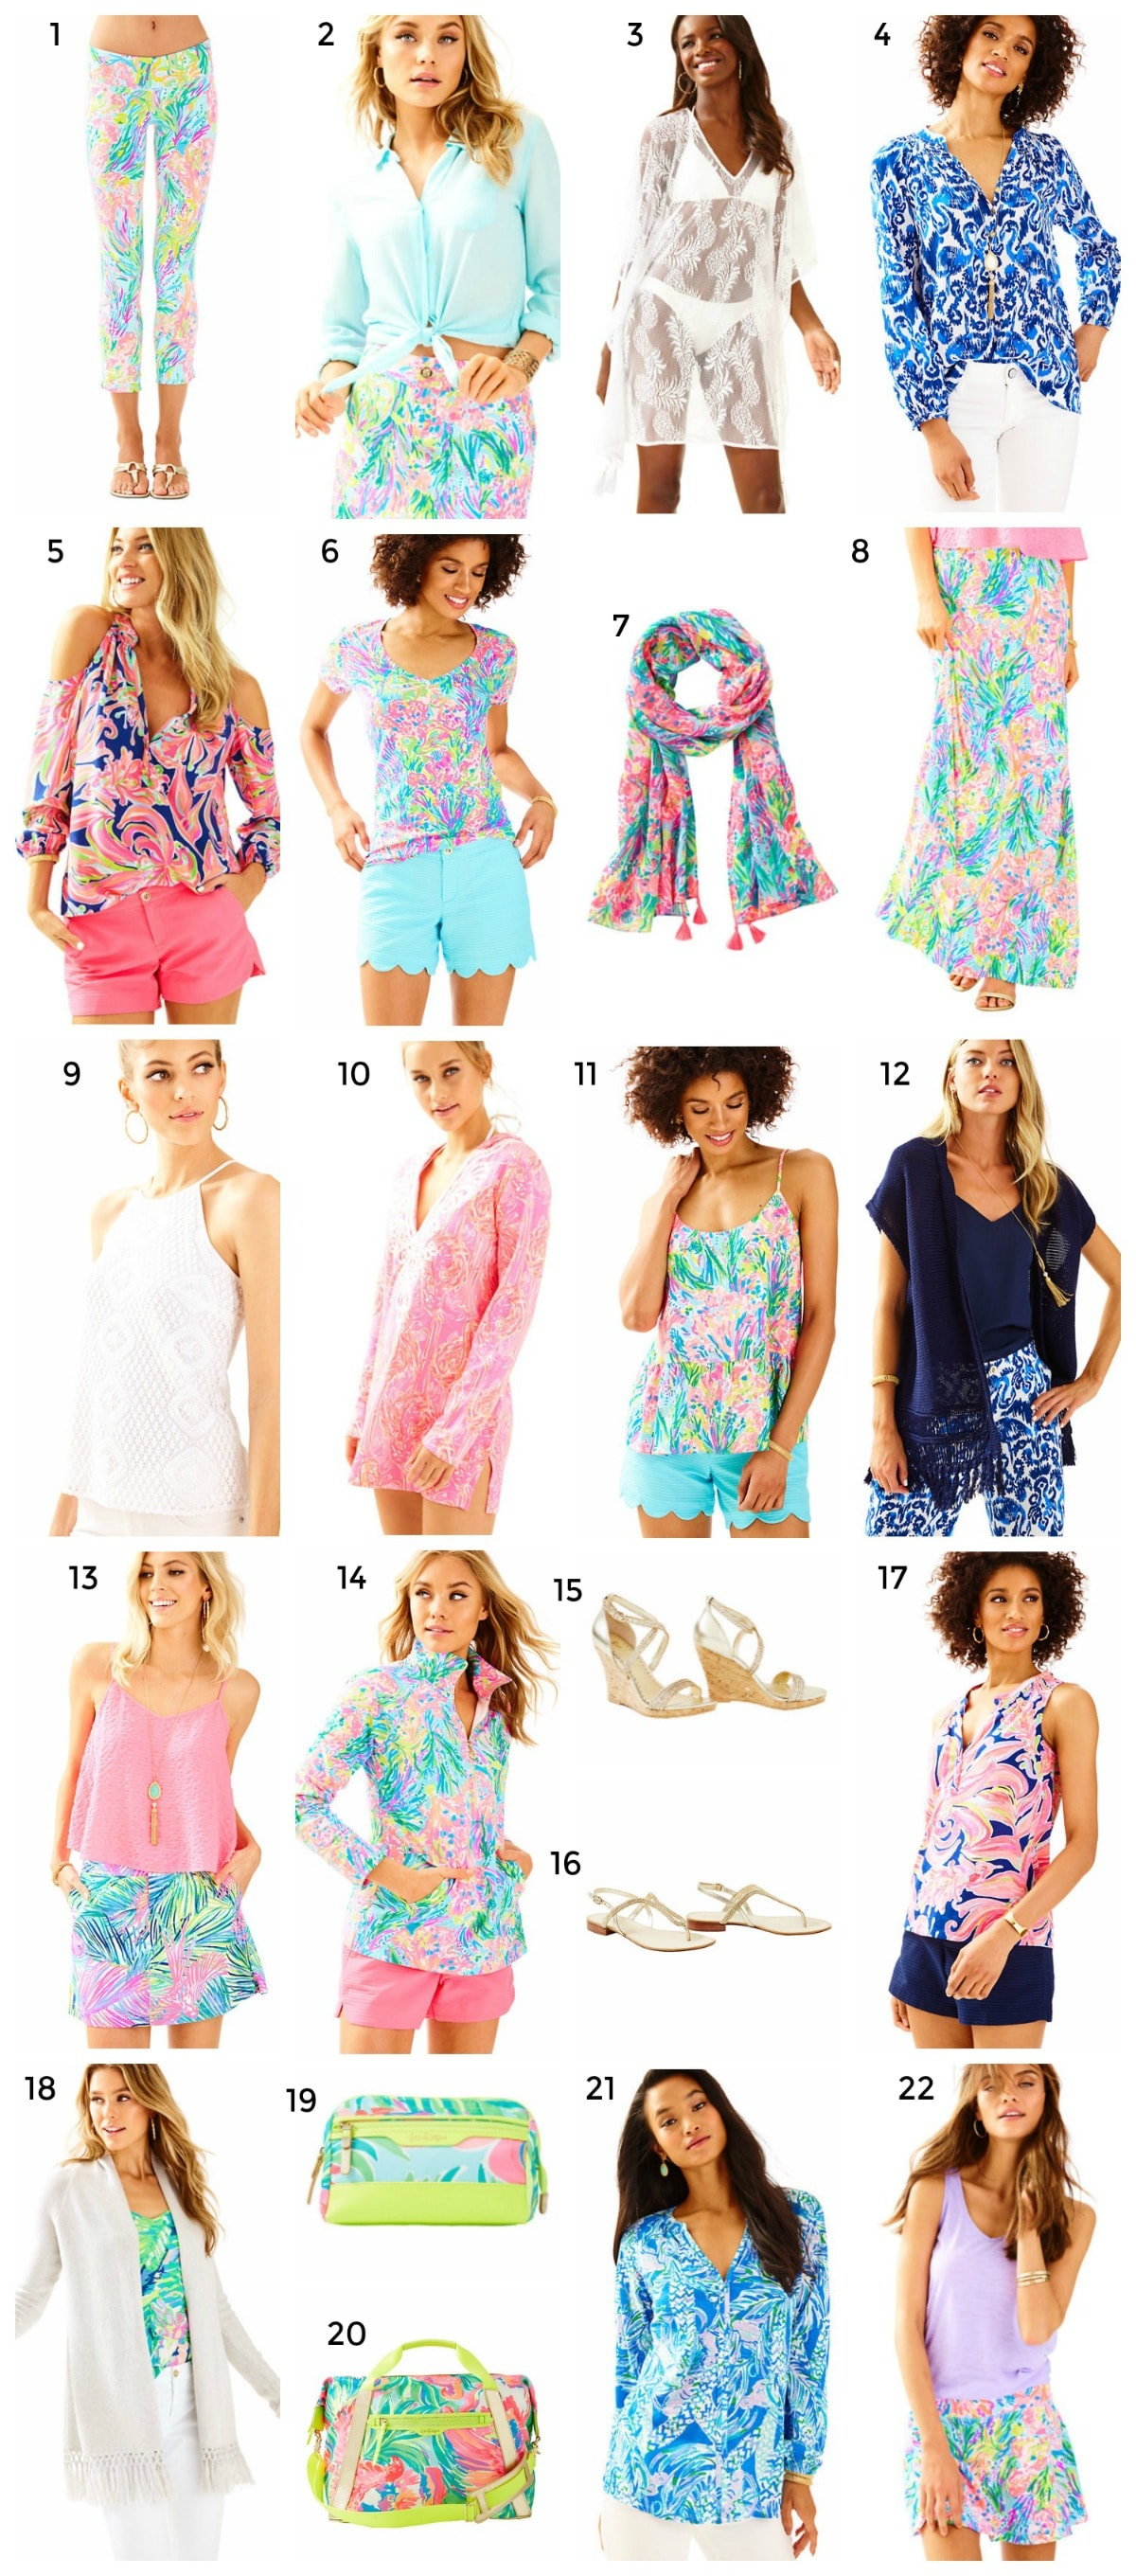 Lilly Pulitzer Spring Collection + New Arrivals + Cutest Lilly Pulitzer Shirts | Florida Style Blogger Ashley Brooke Nicholas